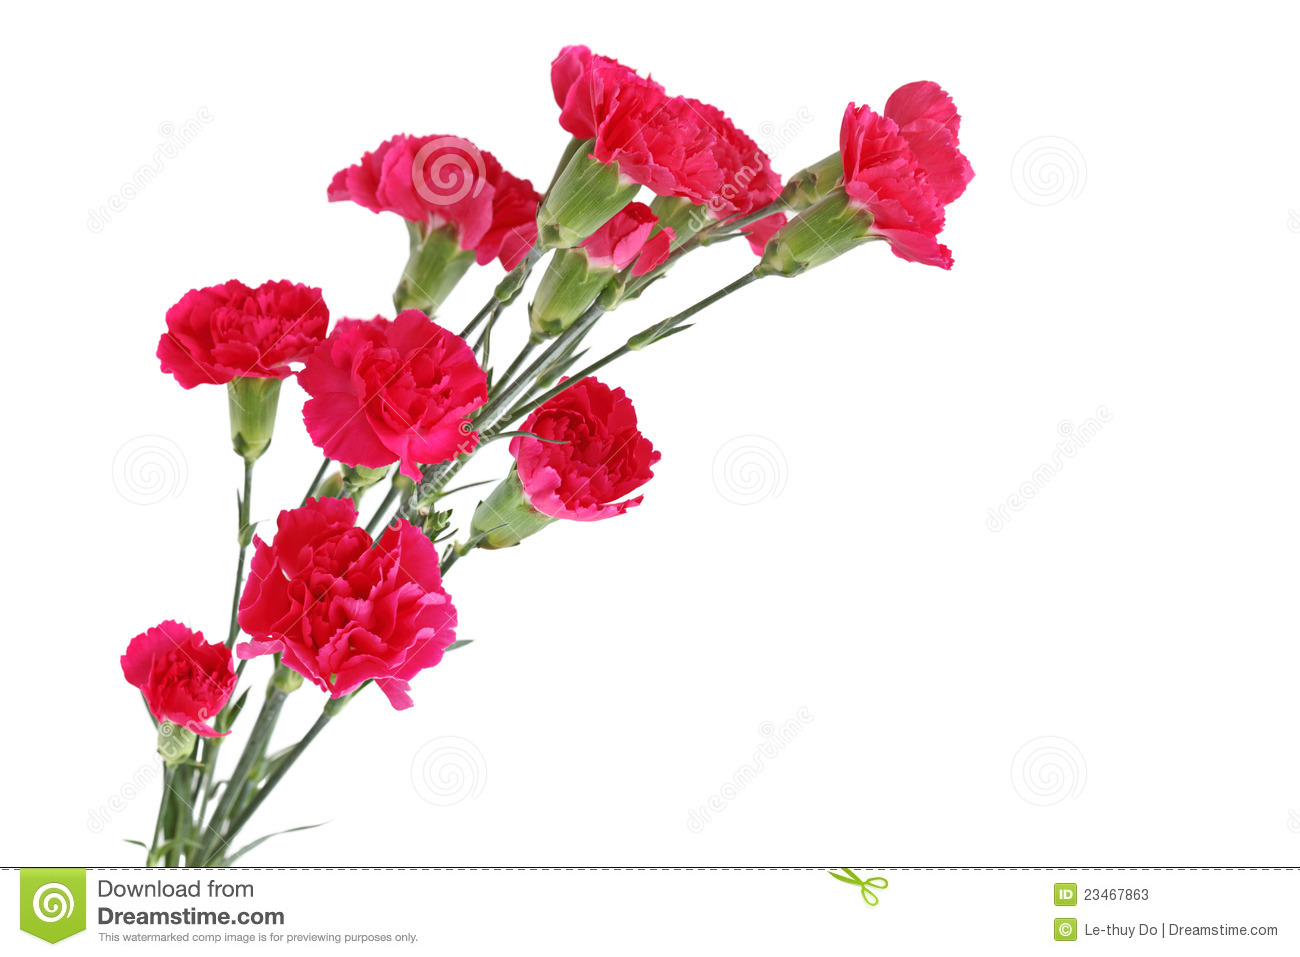 Red Carnation Dianthus caryophyllus flowers isolated on white.